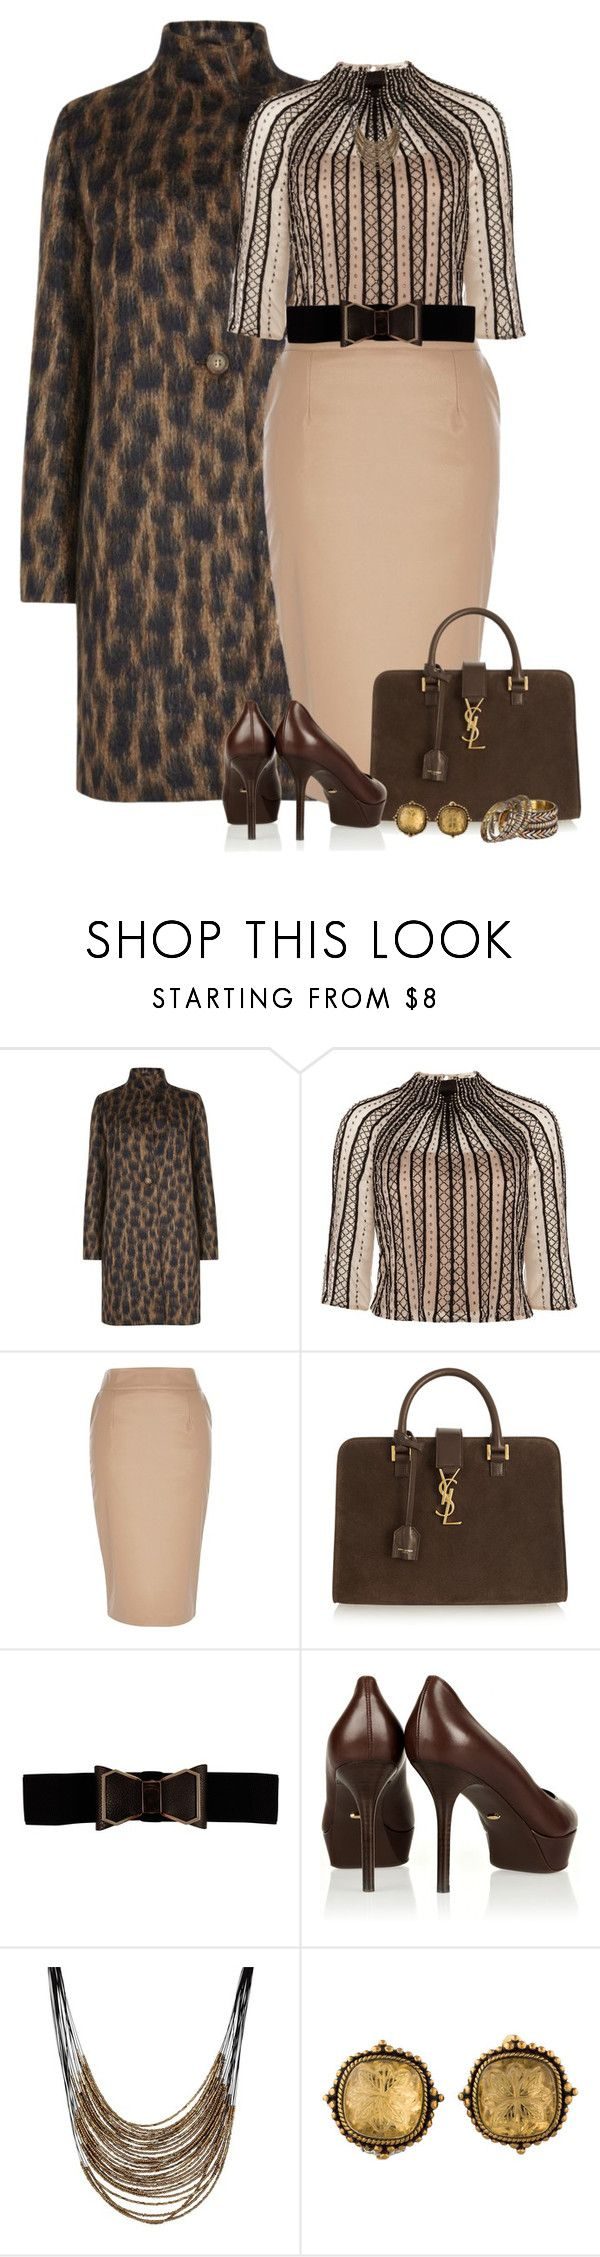 """""""Suede Tote"""" by kiffanyl ❤ liked on Polyvore featuring MaxMara, Temperley London, River Island, Yves Saint Laurent, Sergio Rossi, MOOD, Stephen Dweck and Gypsy SOULE"""